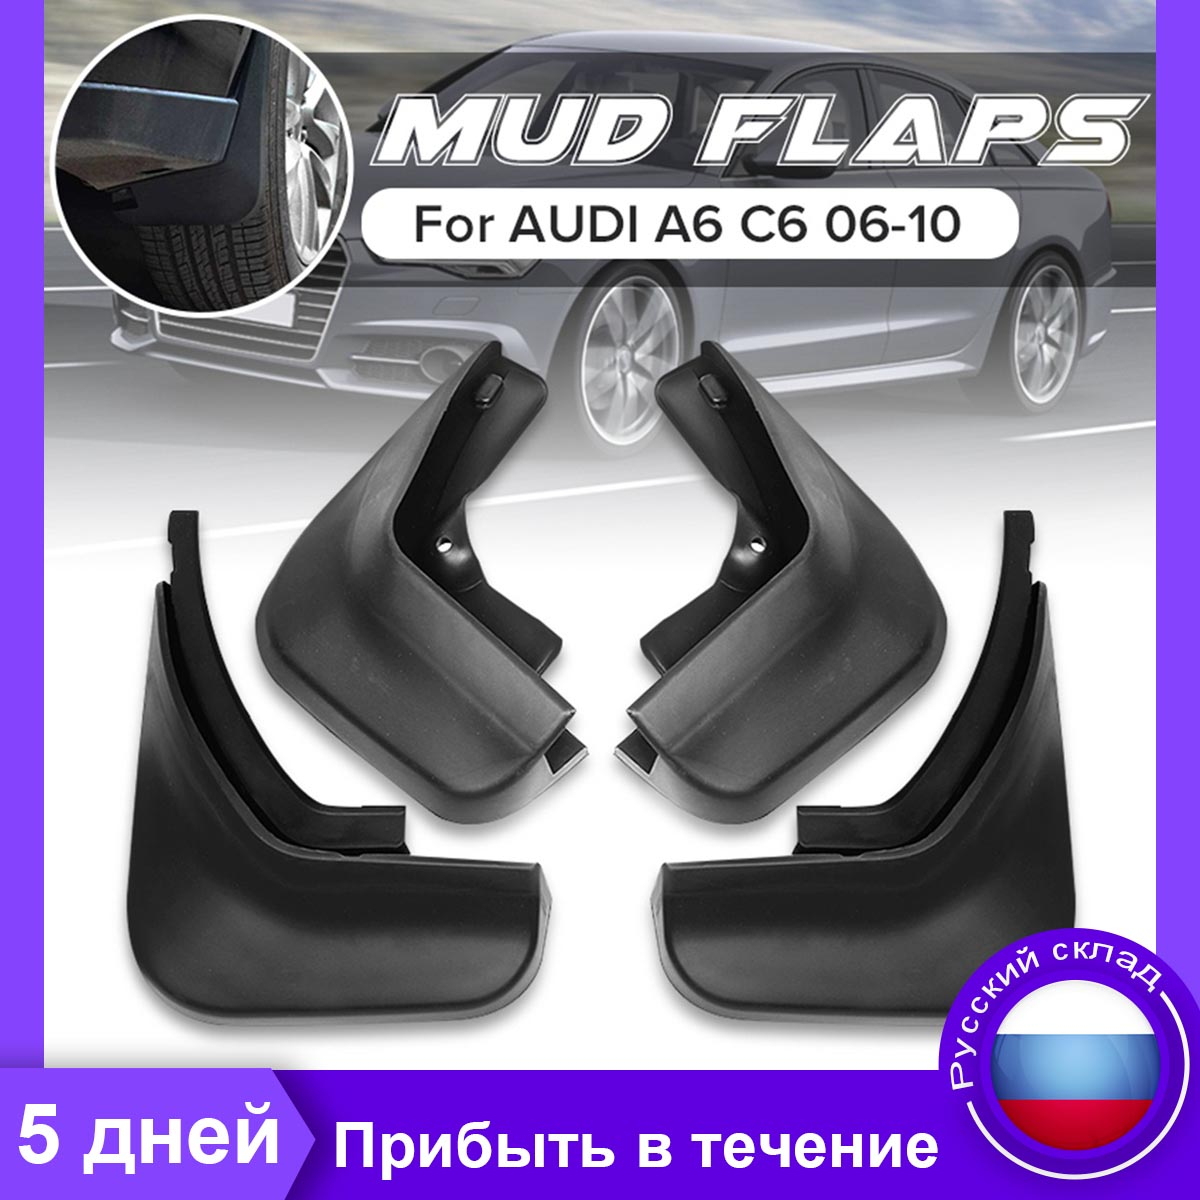 Car Front Rear Mudguards Fender Flares Splash Guards Mud Flaps for <font><b>AUDI</b></font> <font><b>A6</b></font> C6 <font><b>2006</b></font> 2007 2008 2009 2010 image